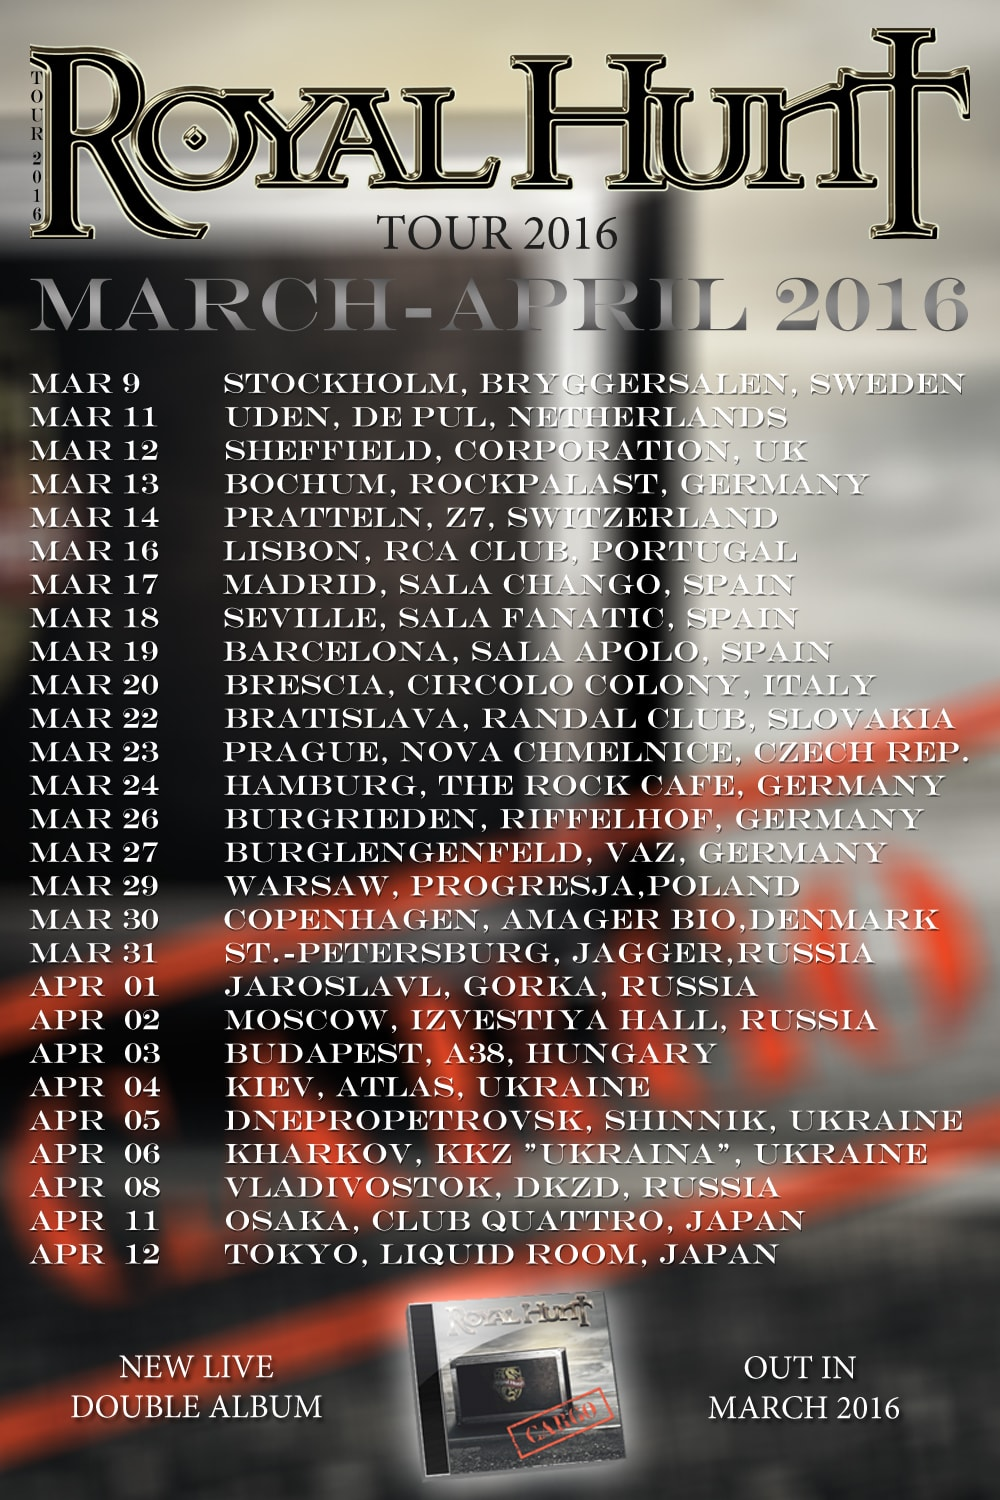 Royal Hunt Tour 2016 Dates